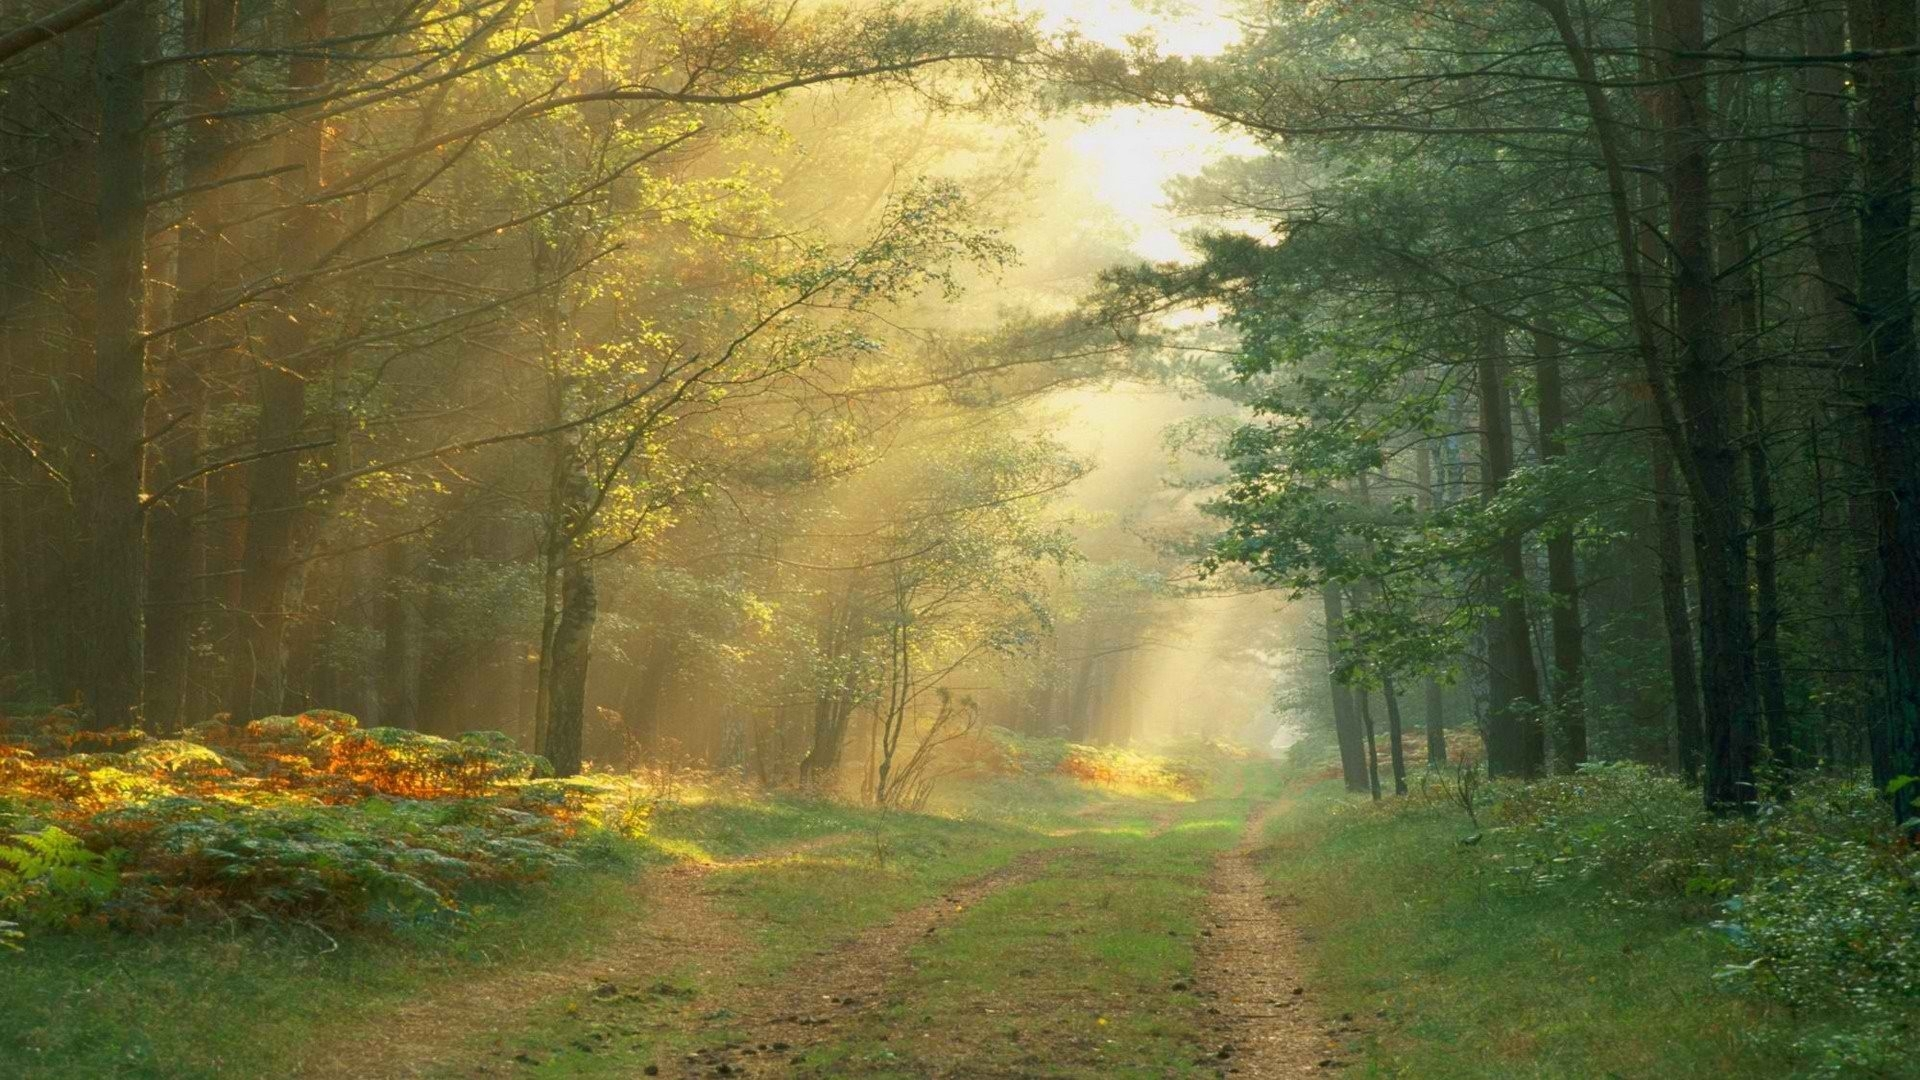 Morning Sunbeams Forests Nature Background Wallpapers on